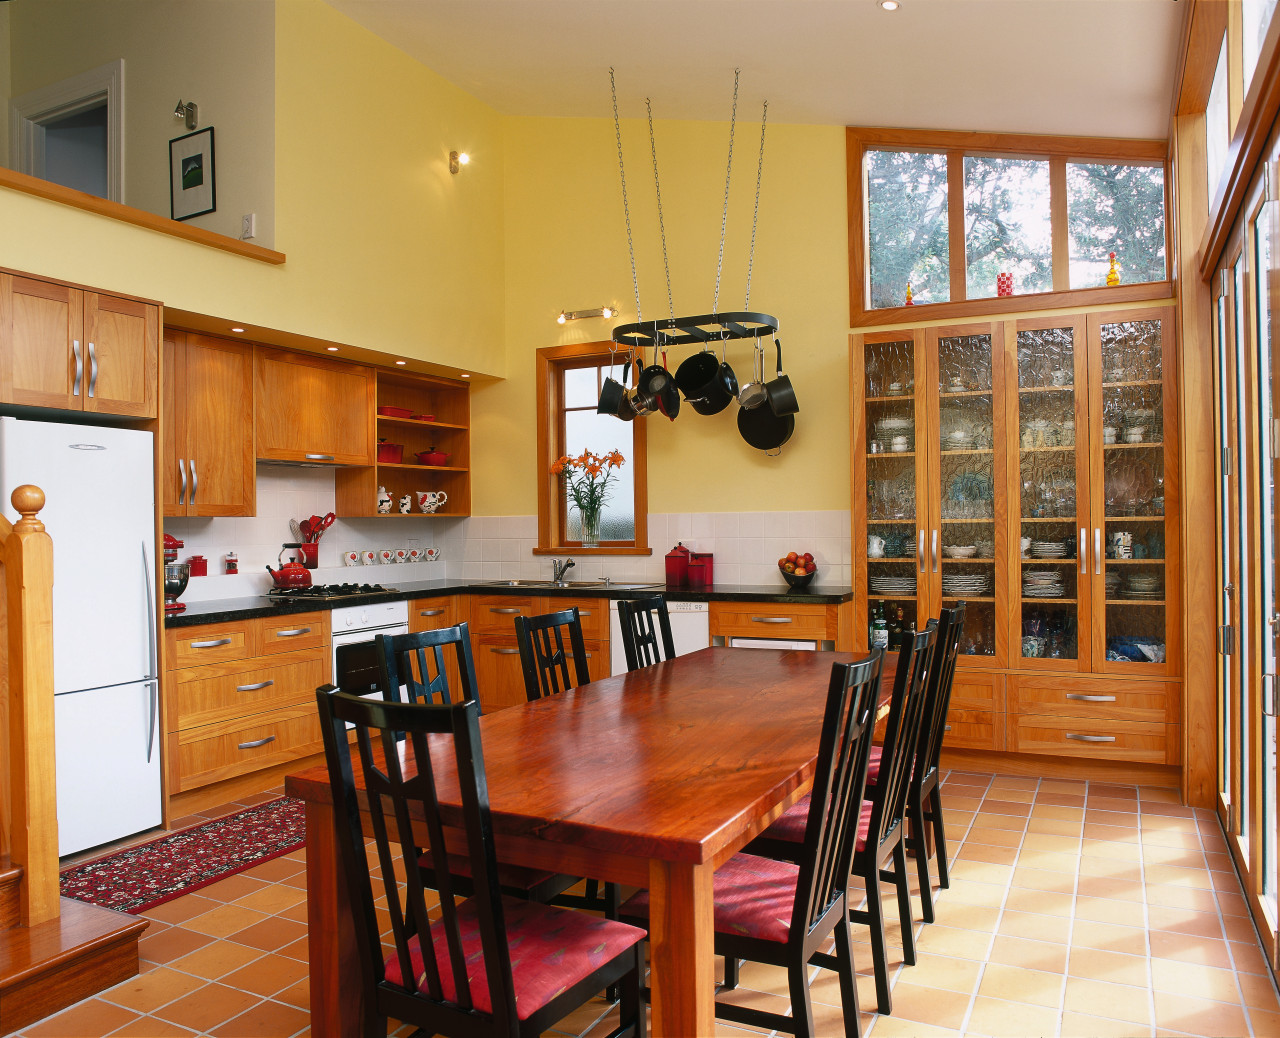 Traditional kitchen with macrocarpa cabinetry, glass doors in dining room, flooring, hardwood, interior design, kitchen, property, real estate, room, table, wood, orange, brown